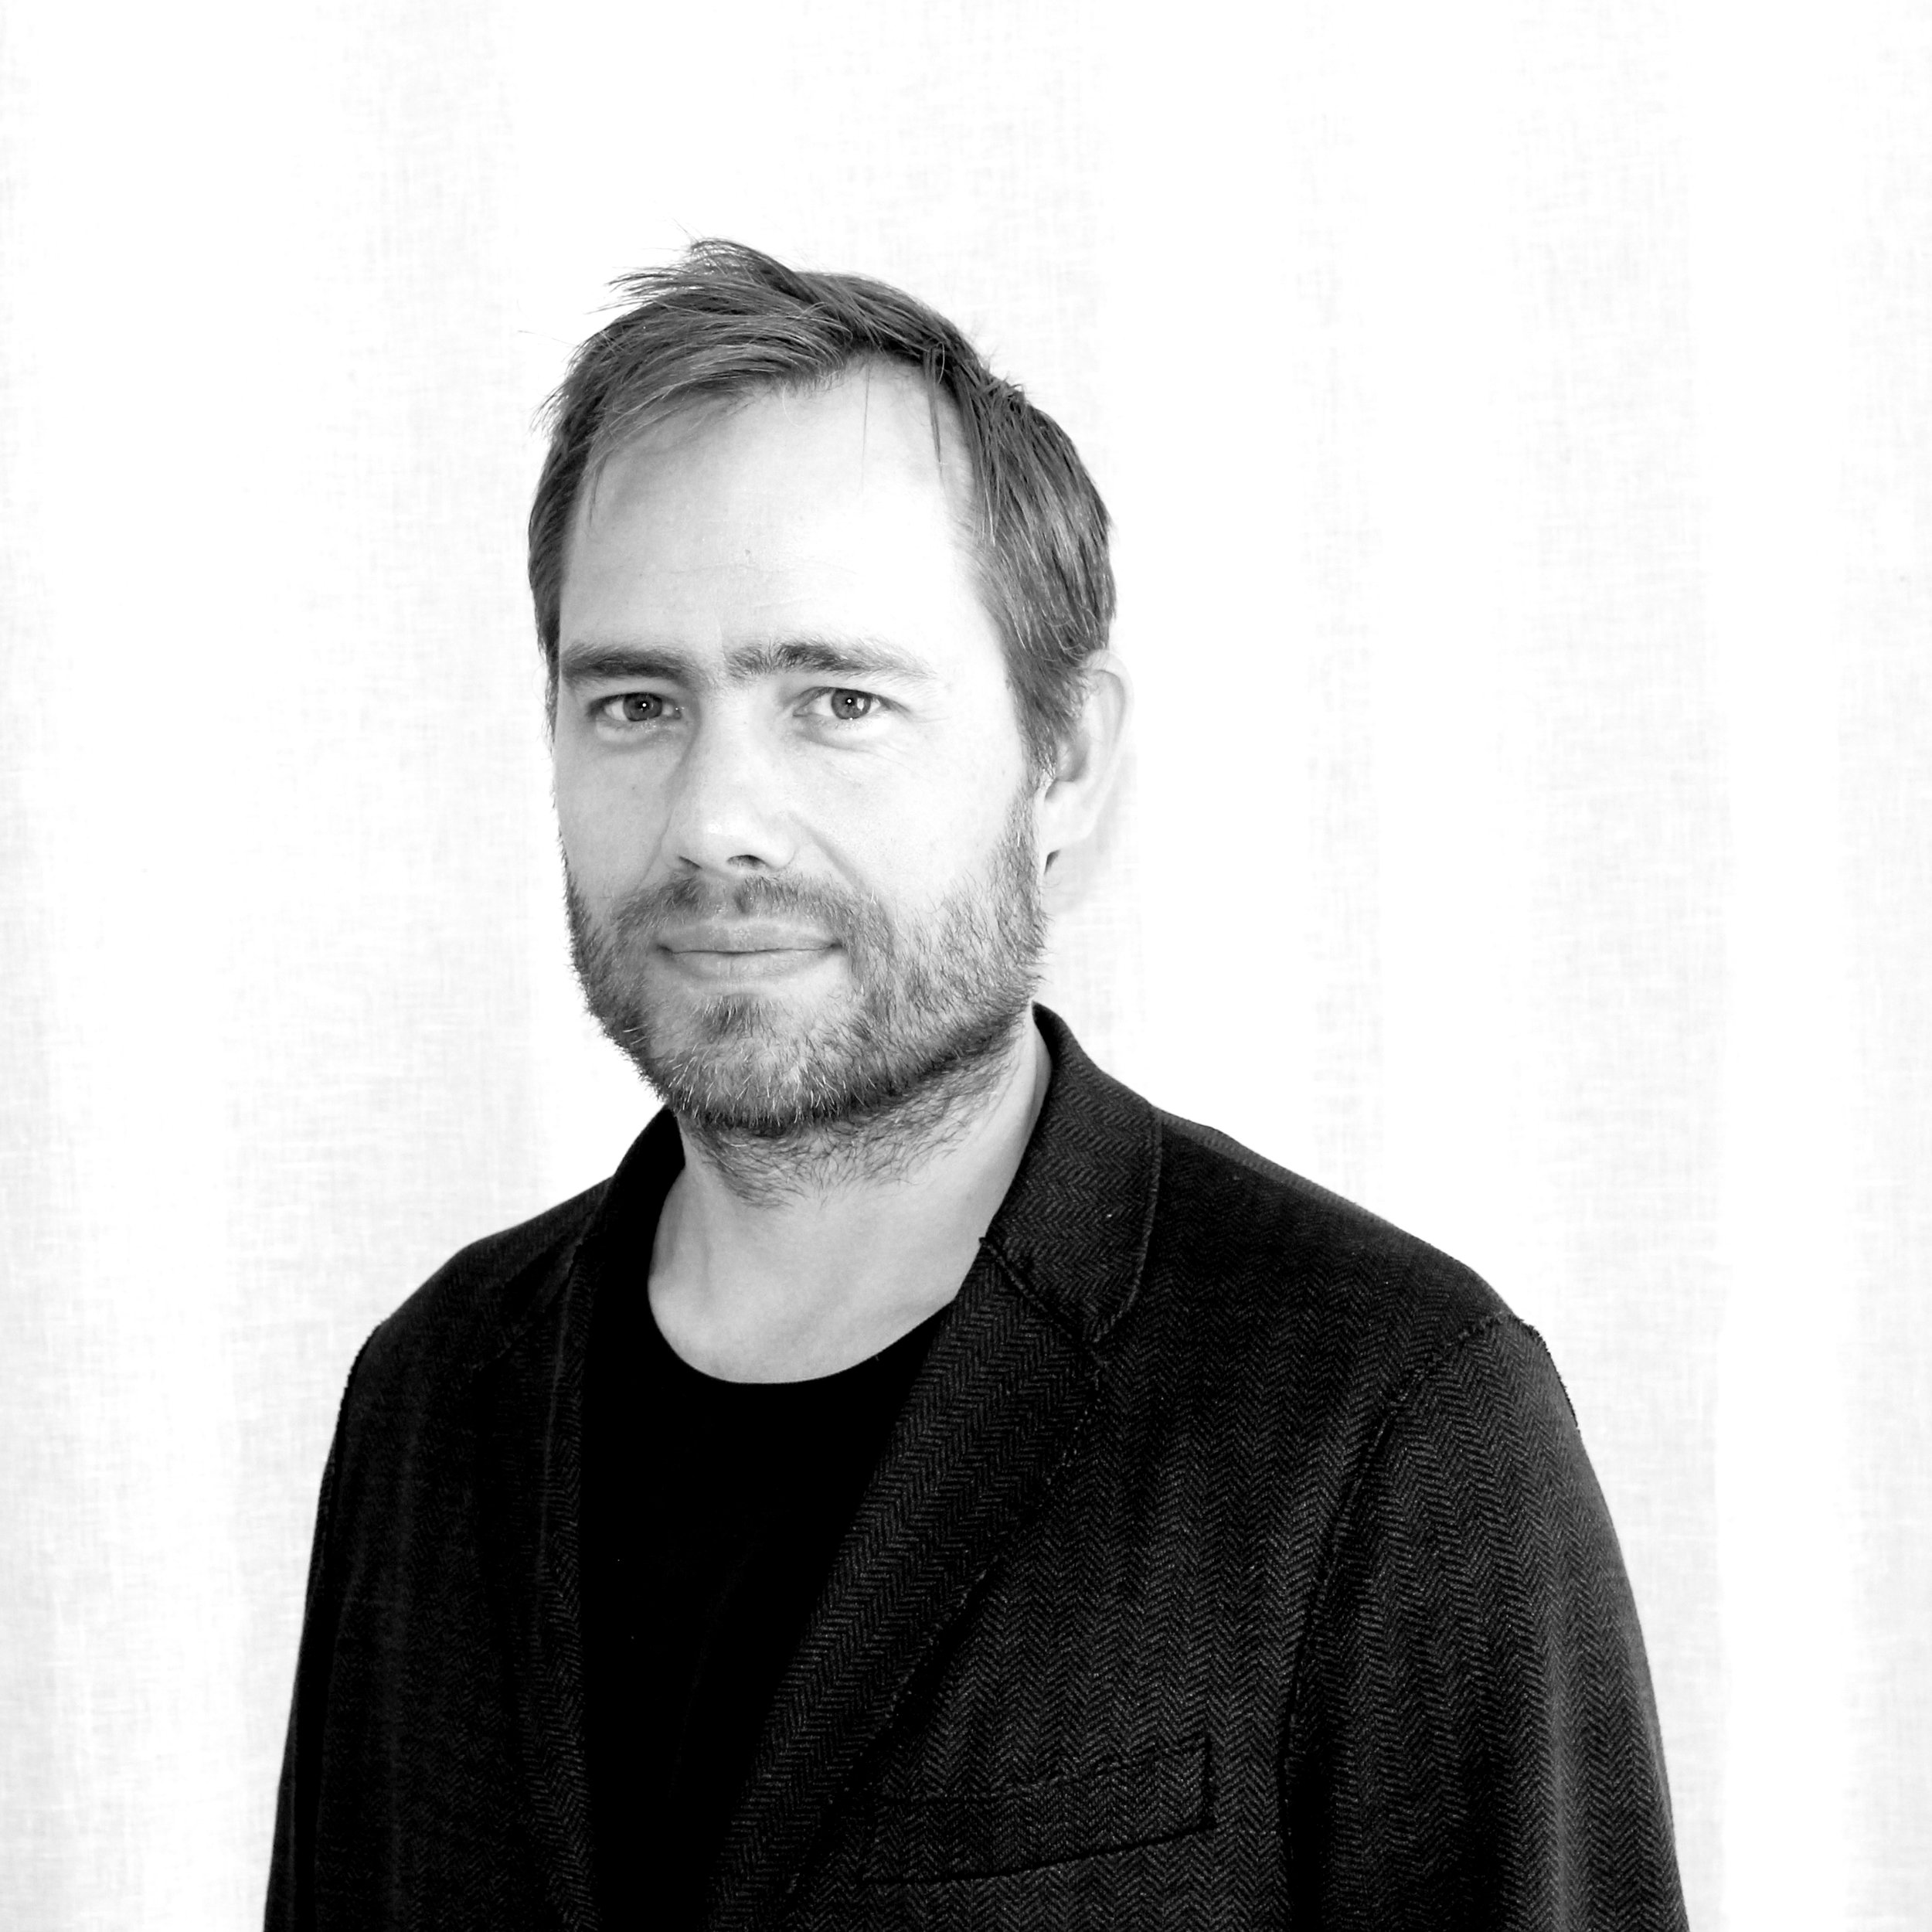 Ola Broms Wessel Founding partner, CEO Architect SAR/MSA m +46 070 994 96 93 ola@spridd.se